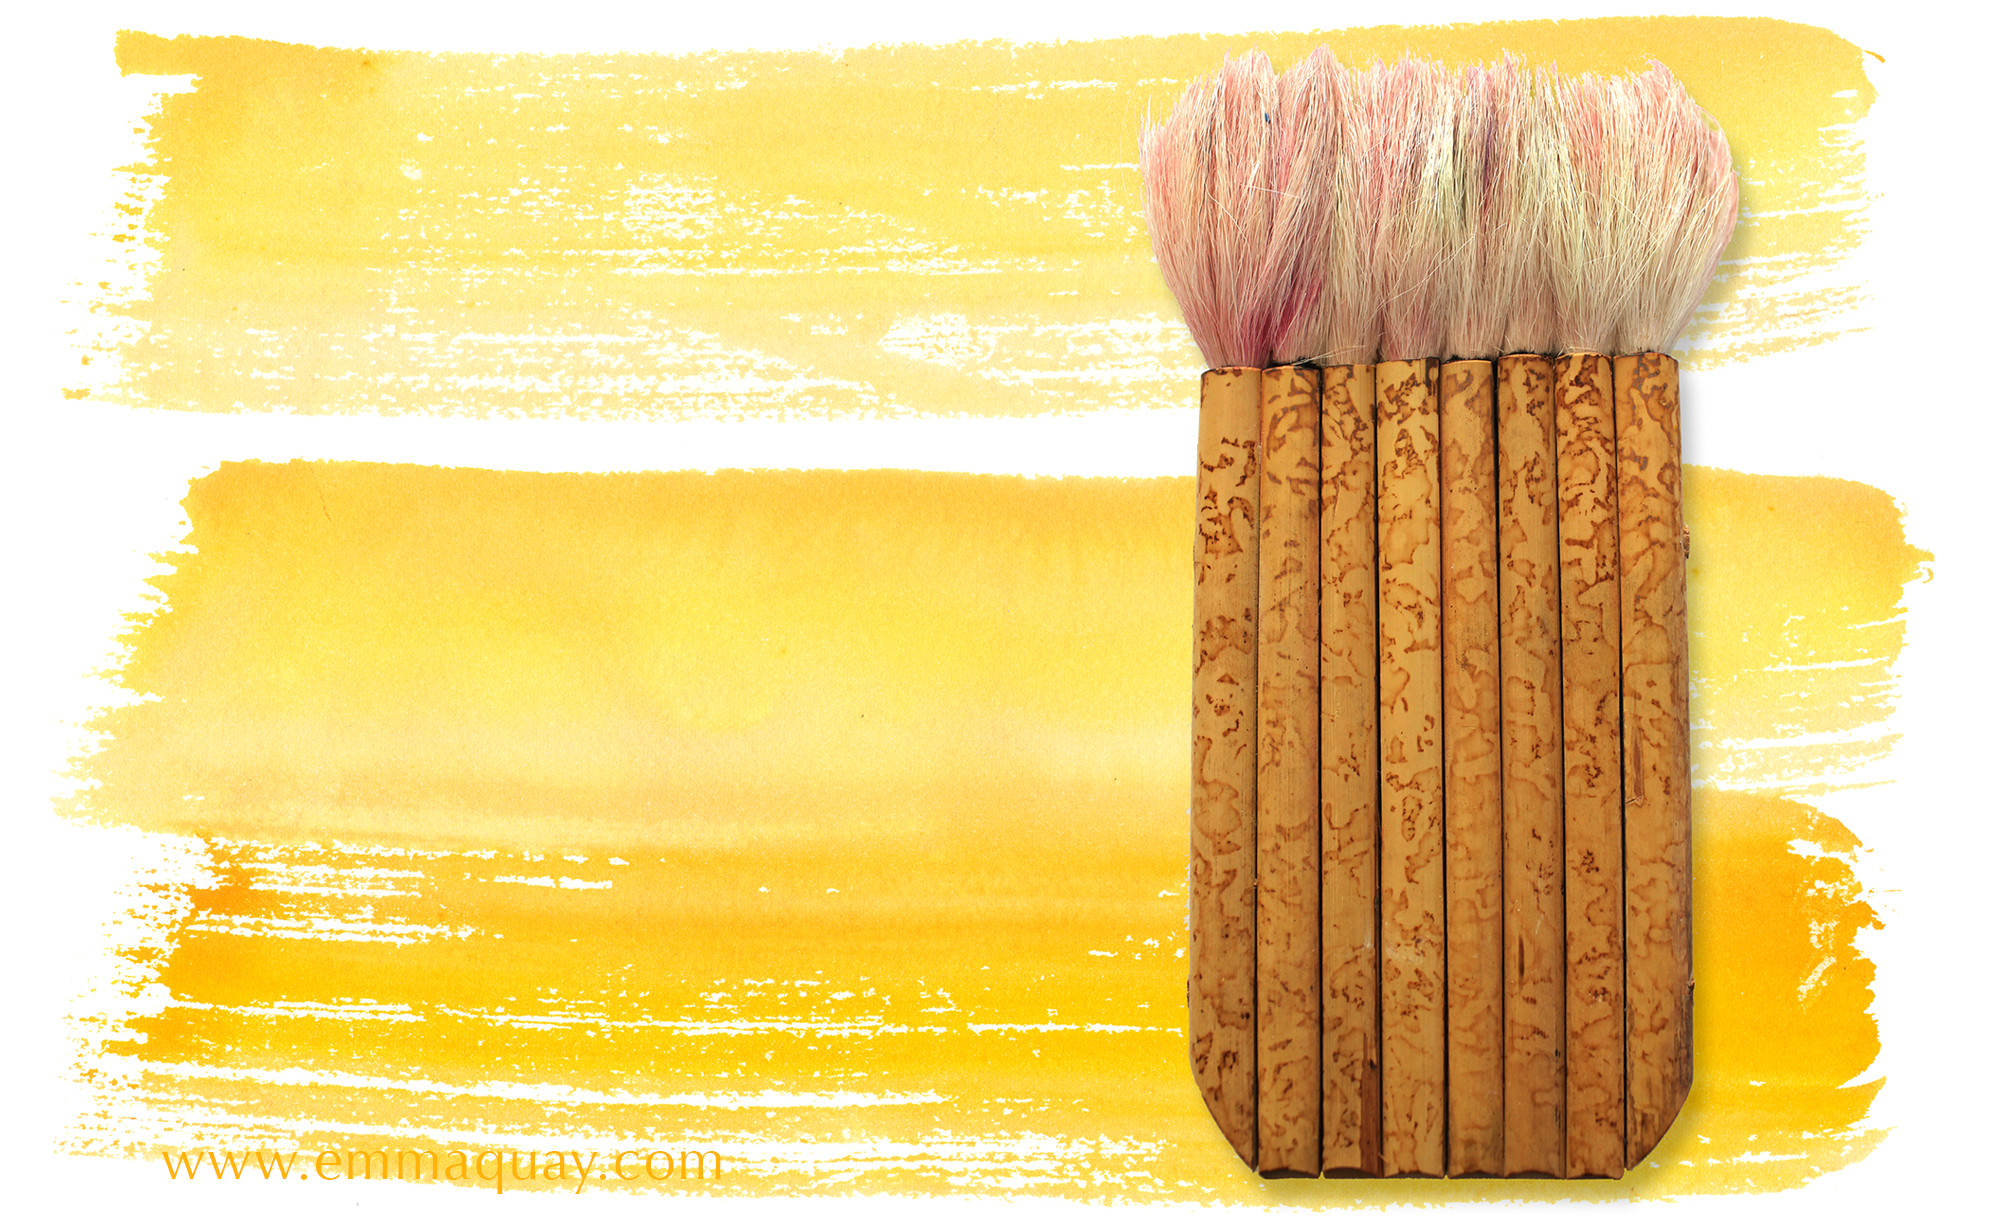 This soft and wide Japanese brush was great for the sweeps of colour at sunset. Some brushes are a pleasure to use.